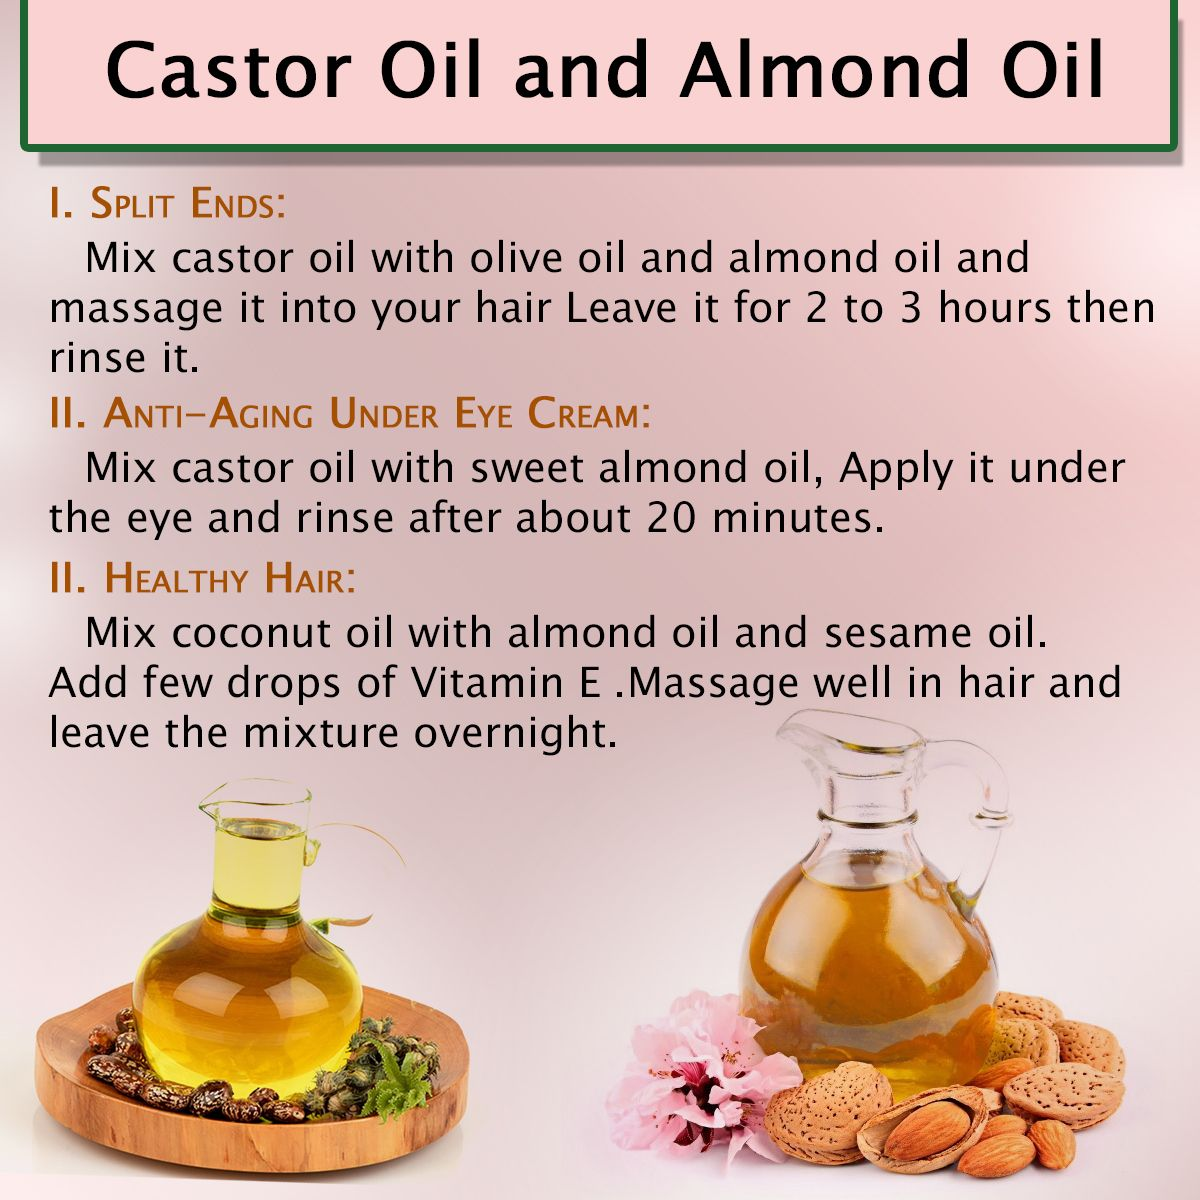 Castor oil and baking soda - Castor Oil uses & Health Benefits | Castor oil,  Wrinkles coconut oil, Castor oil for skin